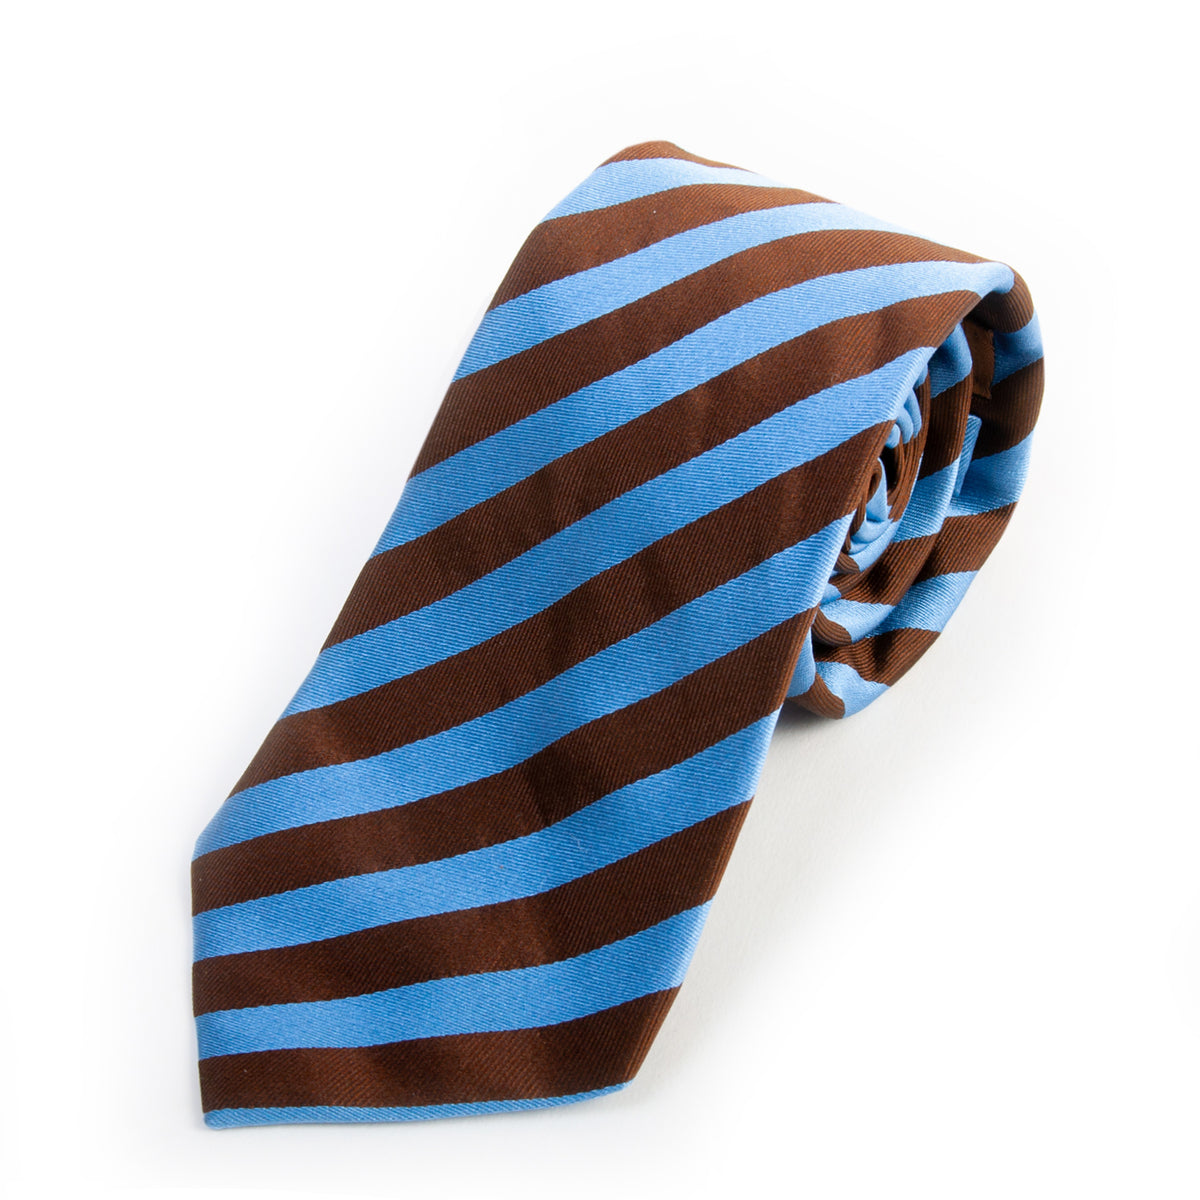 Loding Blue on Brown Candy Stripe Silk Tie for Luxmrkt.com Menswear Consignment Edmonton